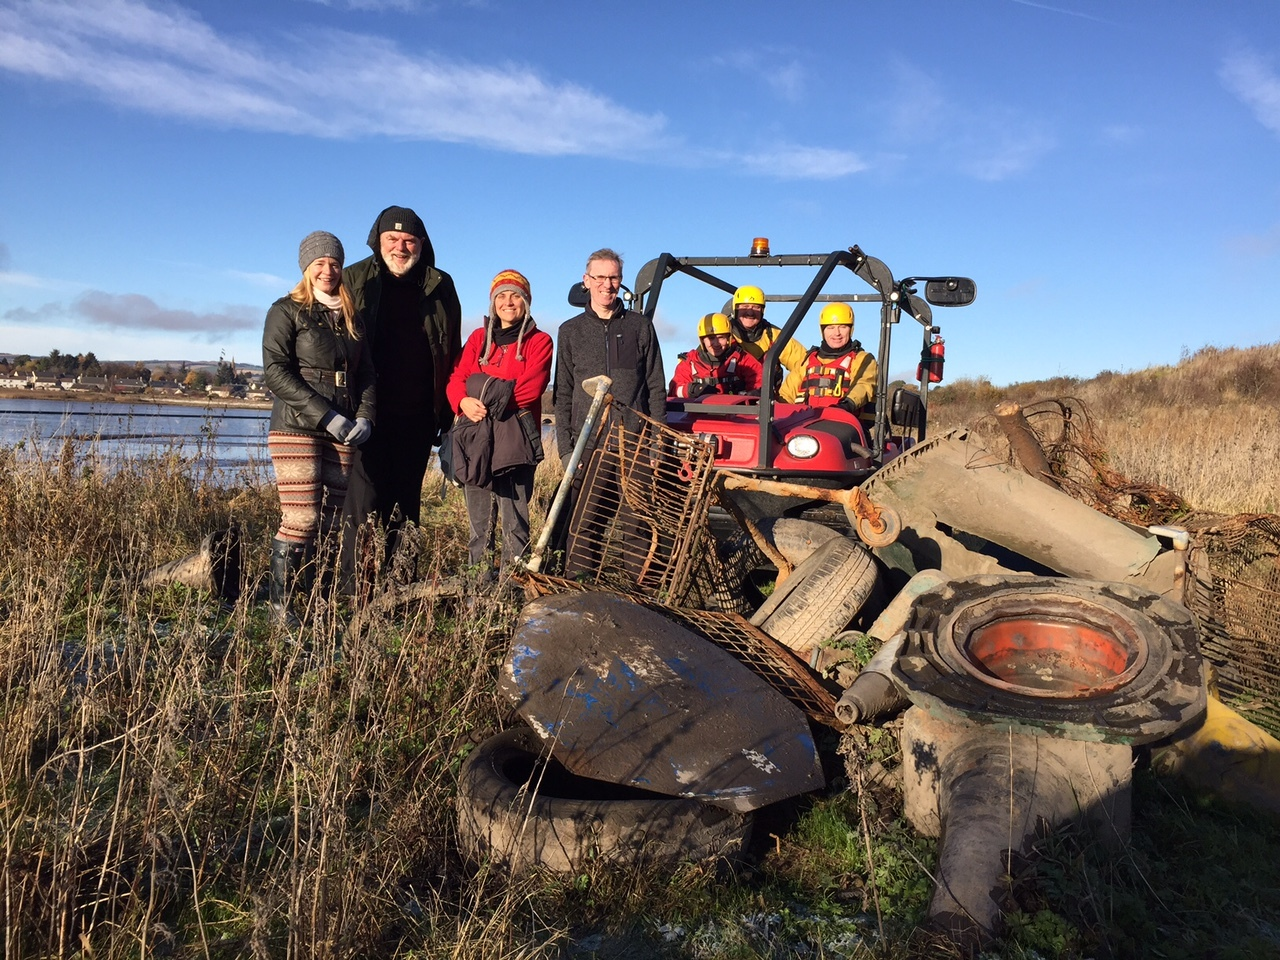 Dundee Airport's fire rescue team are using an ATV to collect rubbish from the bay.